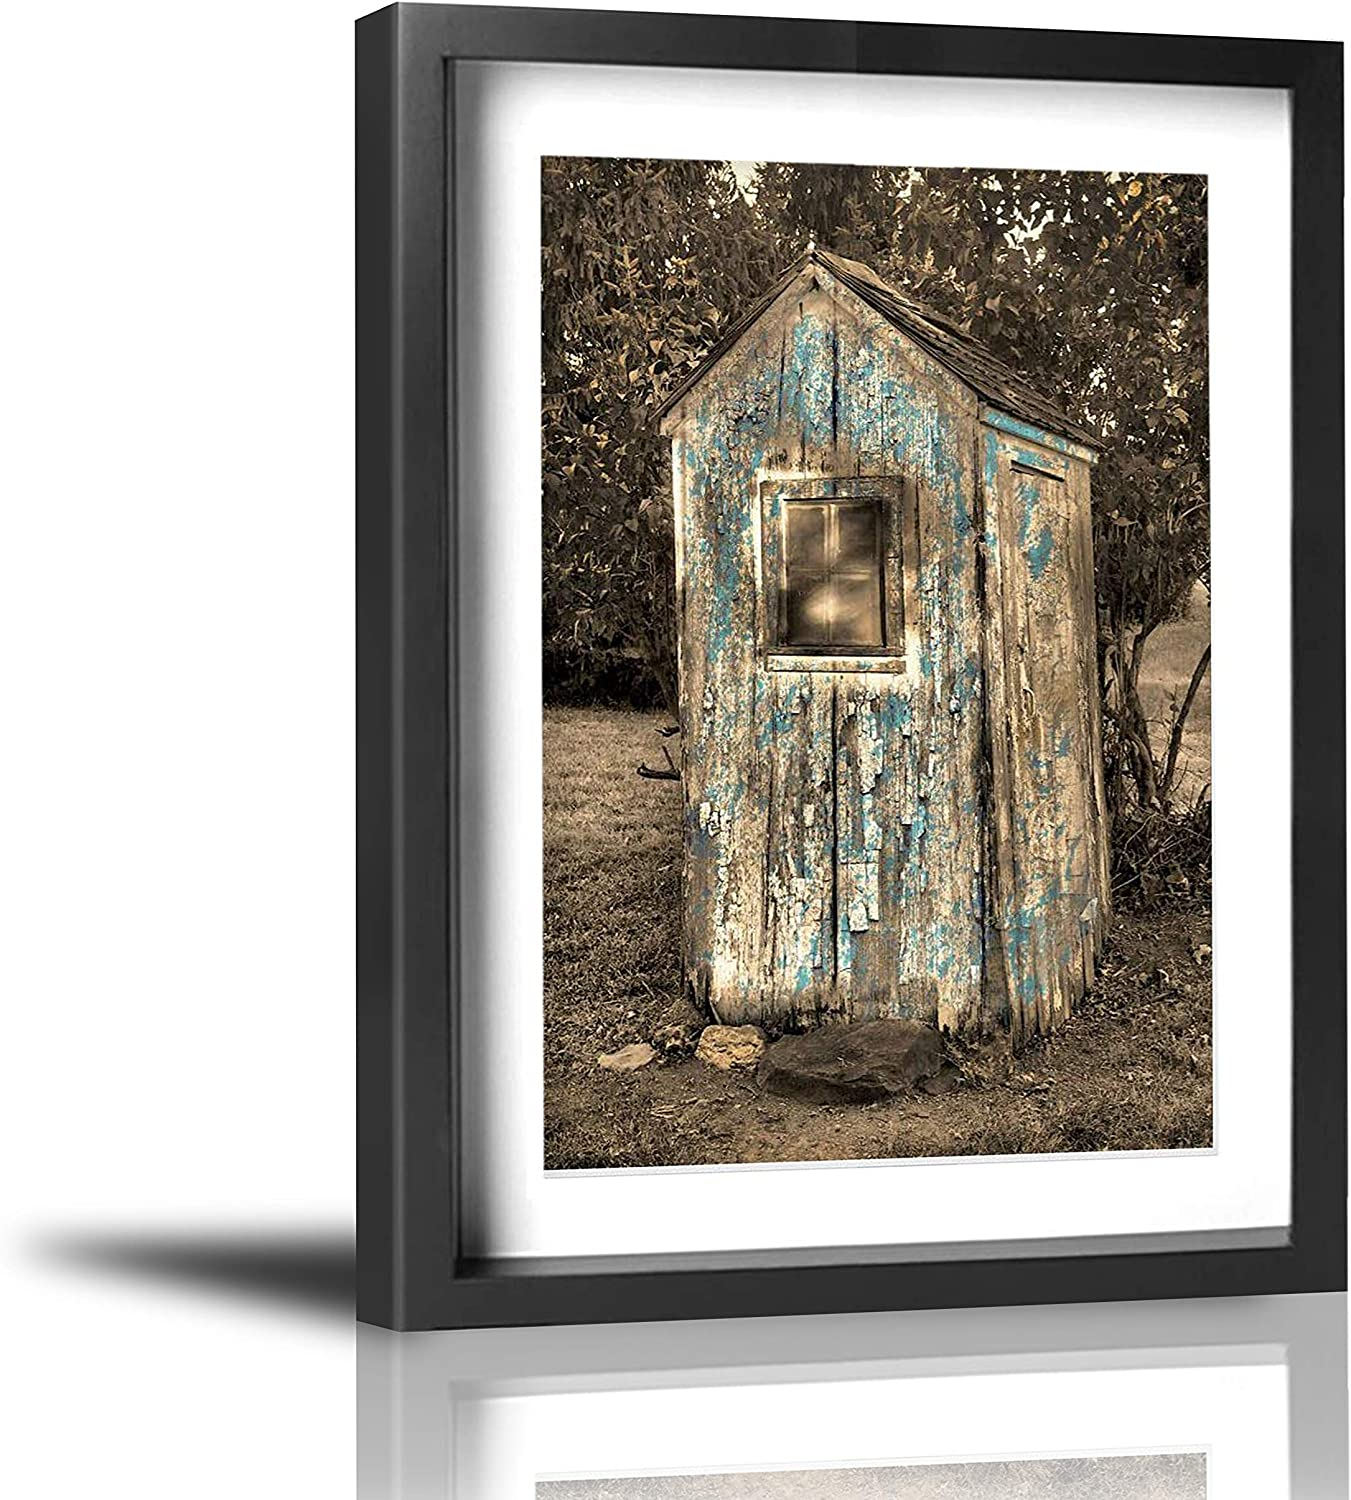 "Coolertaste Rustic Vintage Outhouse Brown Blue Bathroom Wall Decor Vintage Rustic Canvas Wall Art Prints Framed Pictures Artwork Ready to Hang 12"" x 16"""